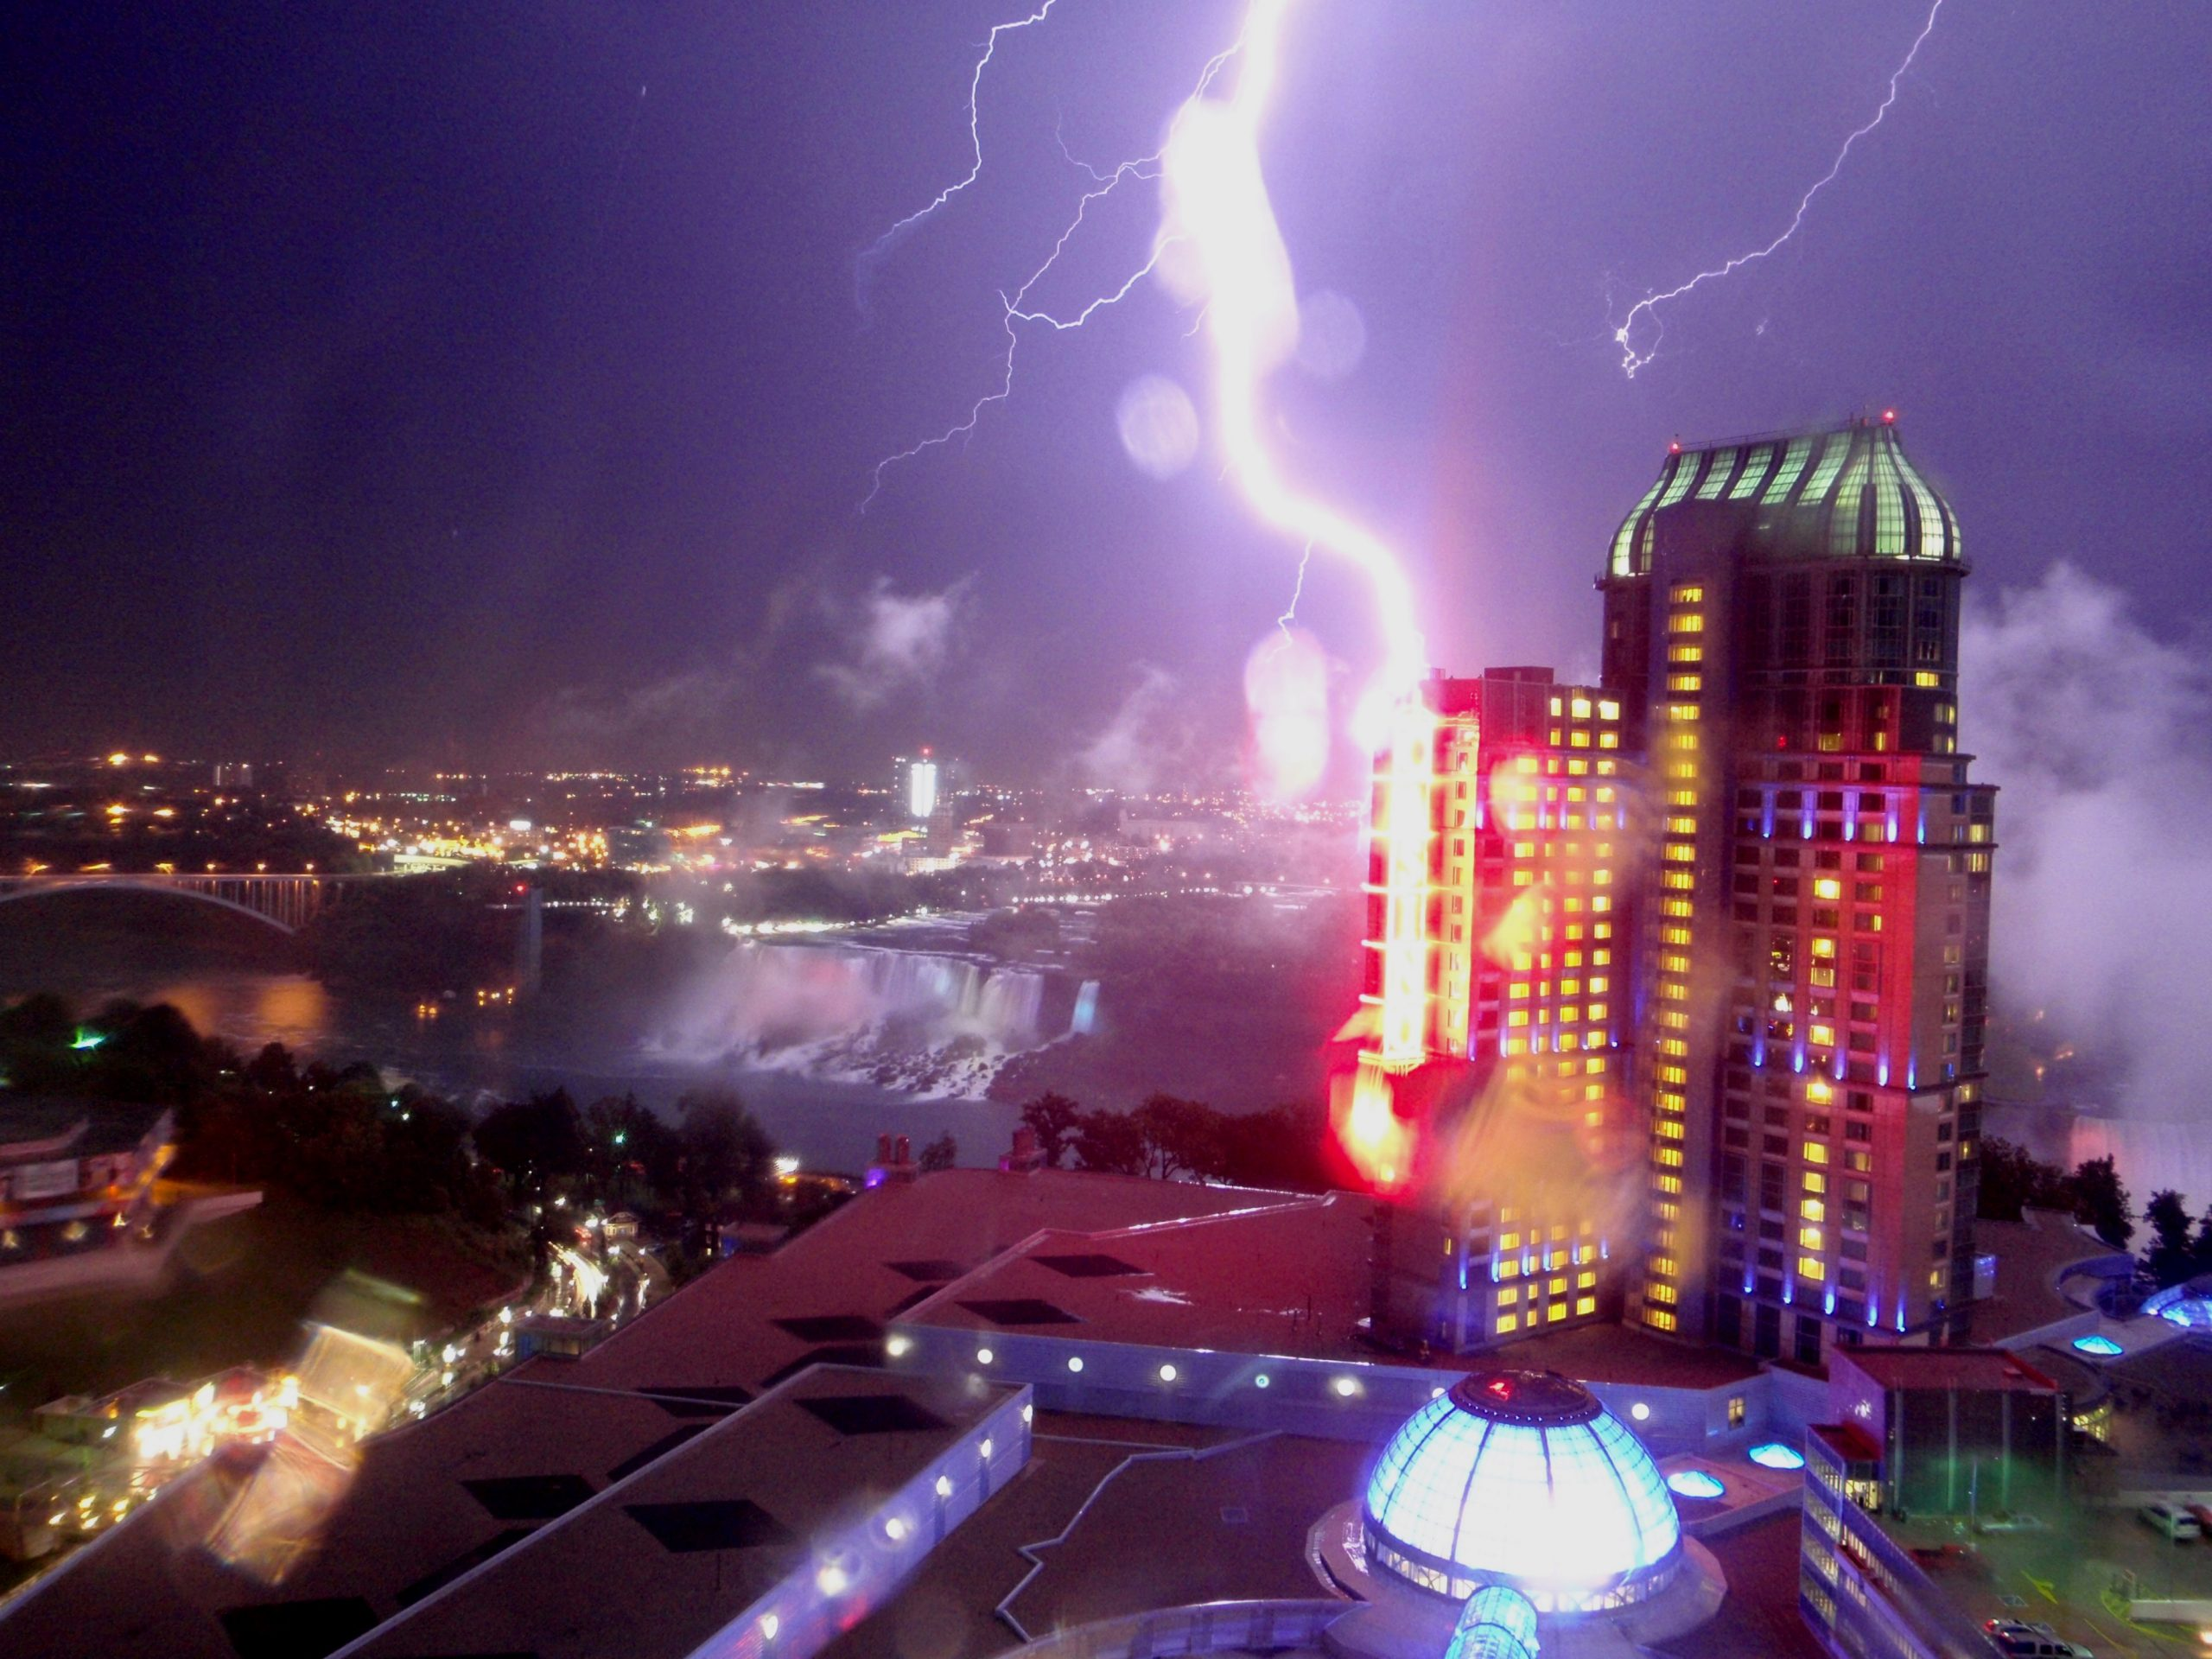 Surge Protection for Gaming and Casinos